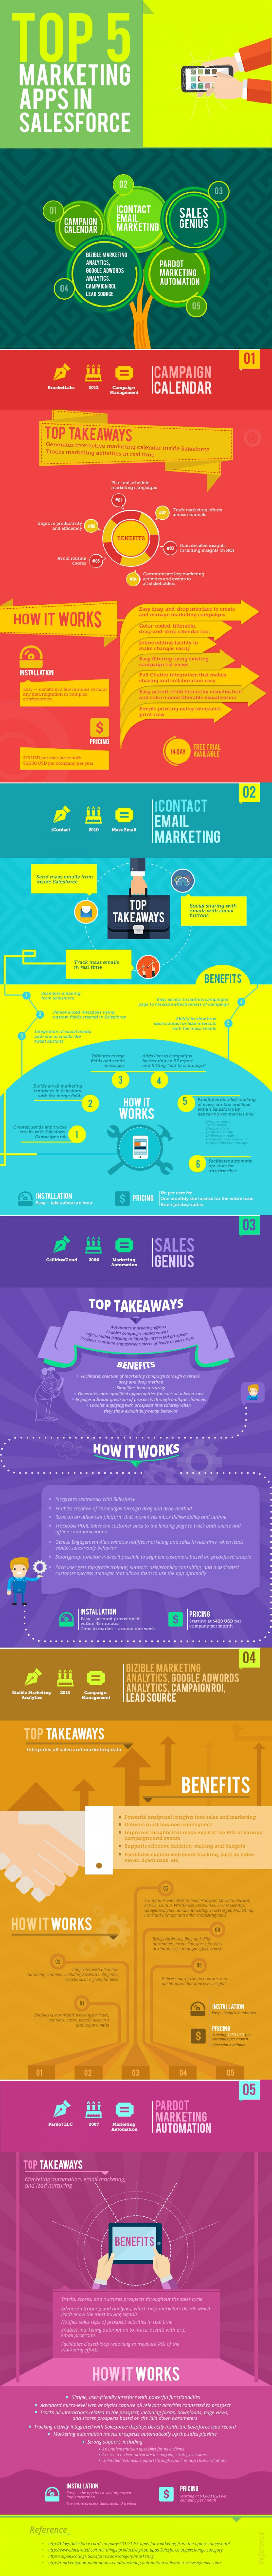 Top 5 Marketing Apps in Salesforce Infographic